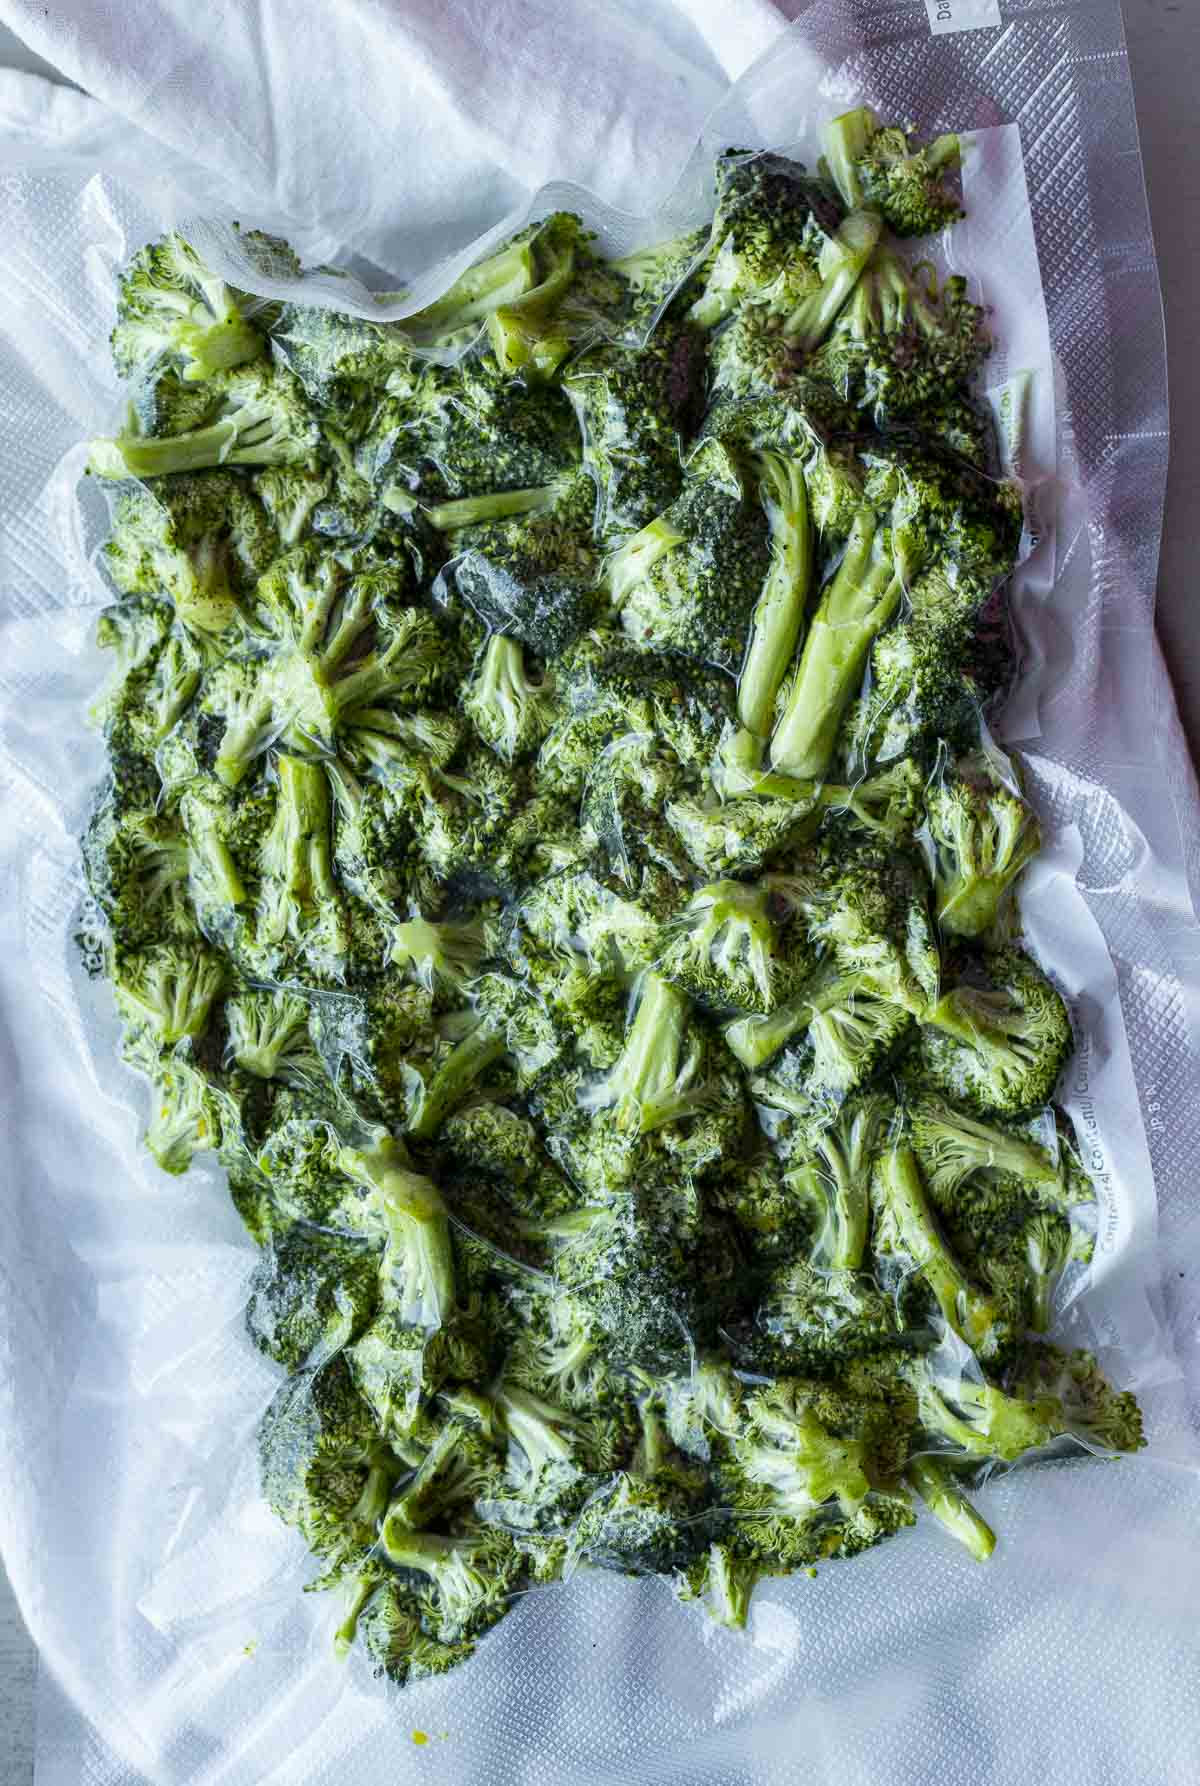 Broccoli vacuum sealed in a sealable bag.